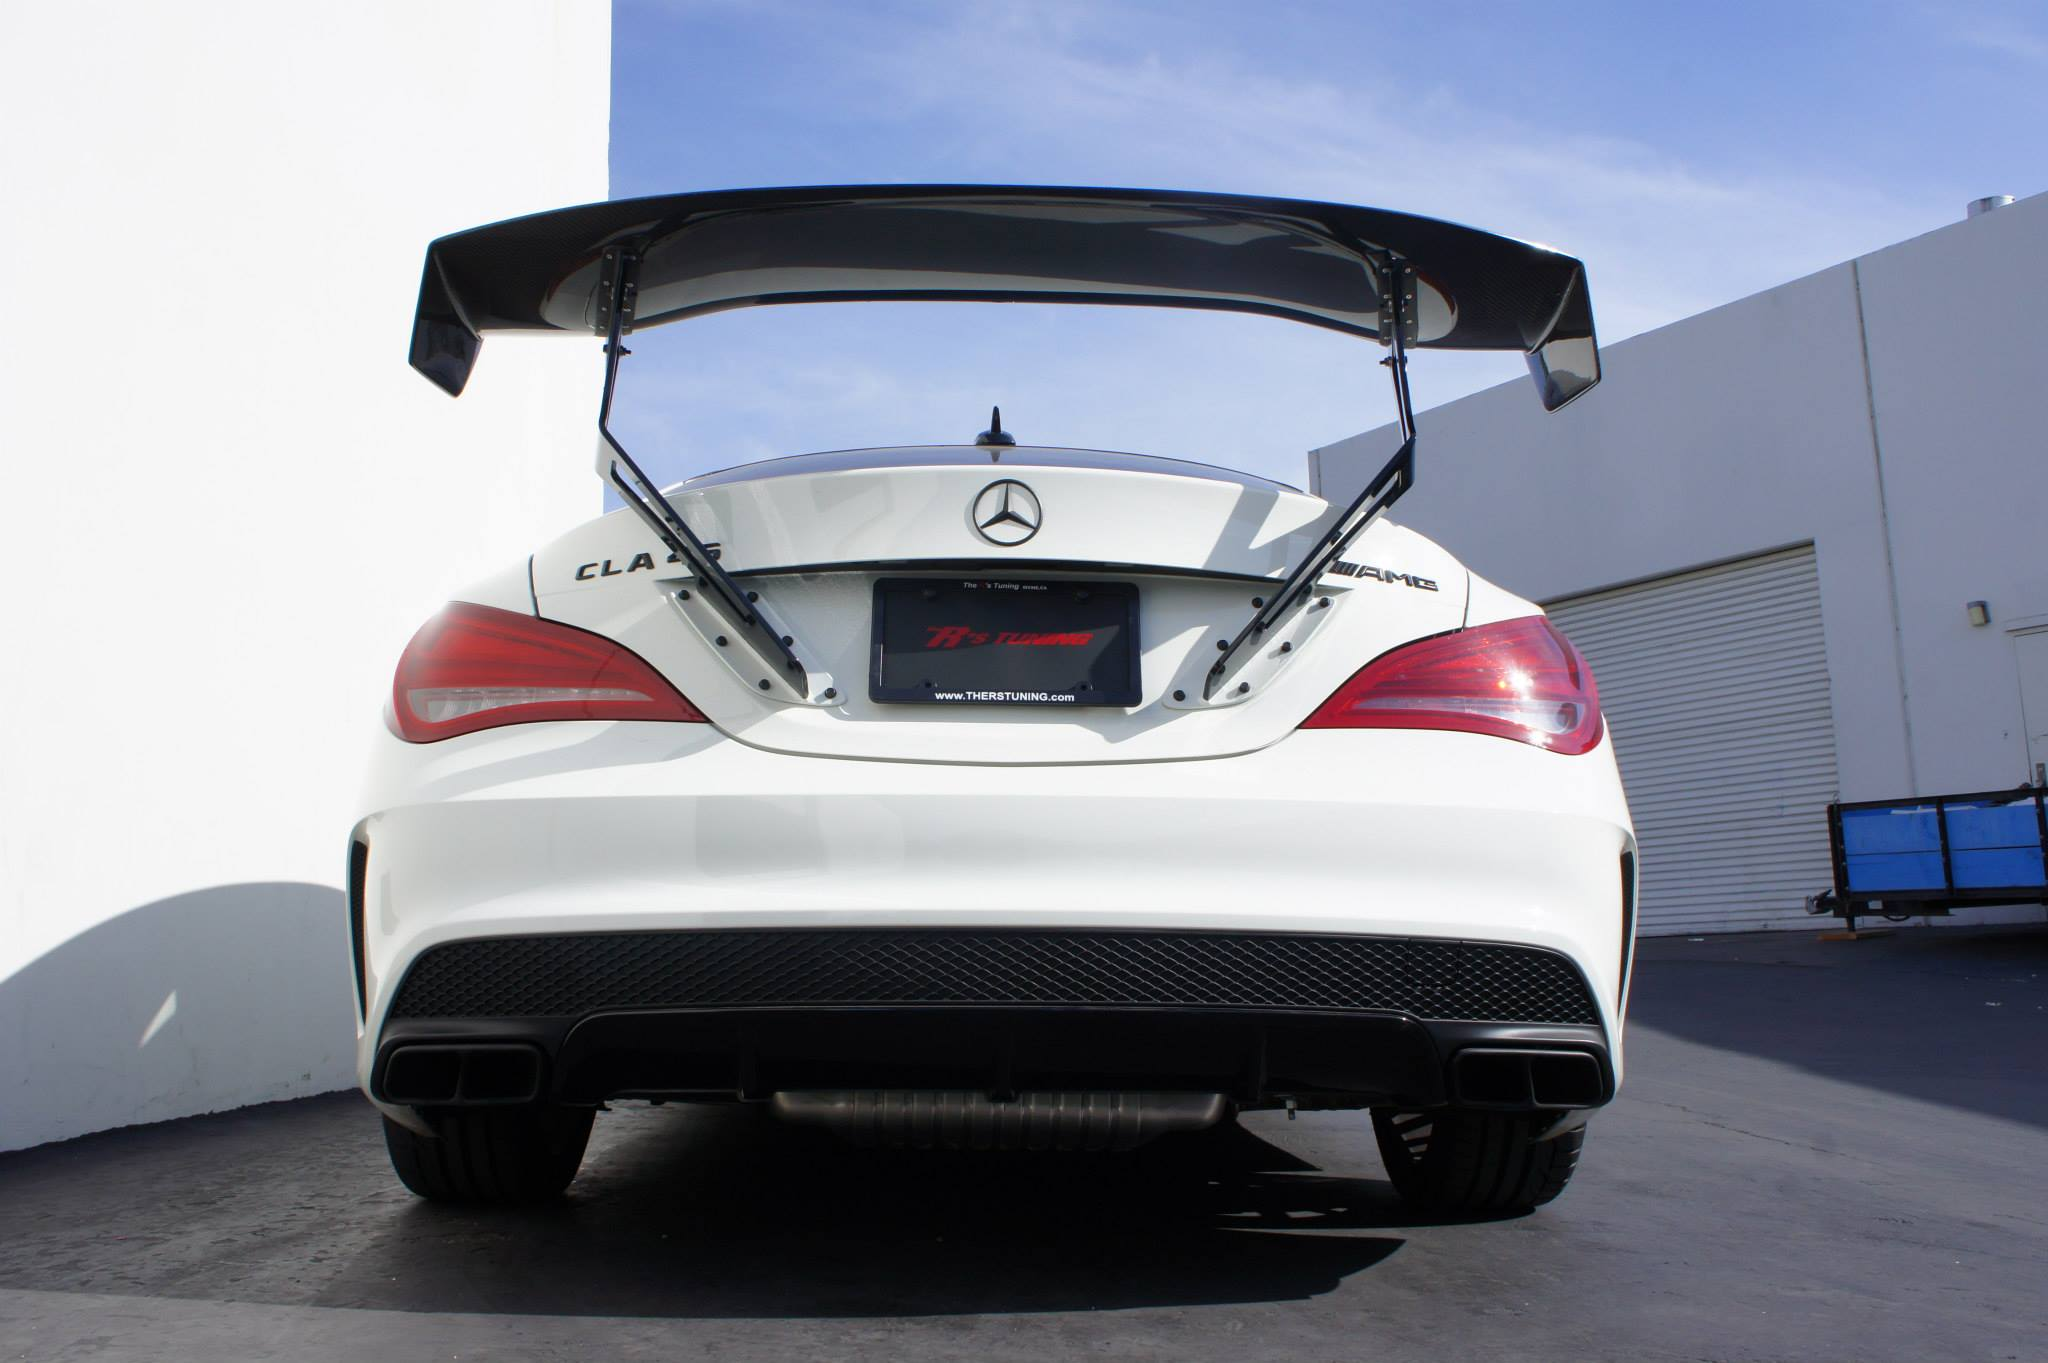 CLA 45 AMG Gets a Voltex Wing by The R's Tuning ...